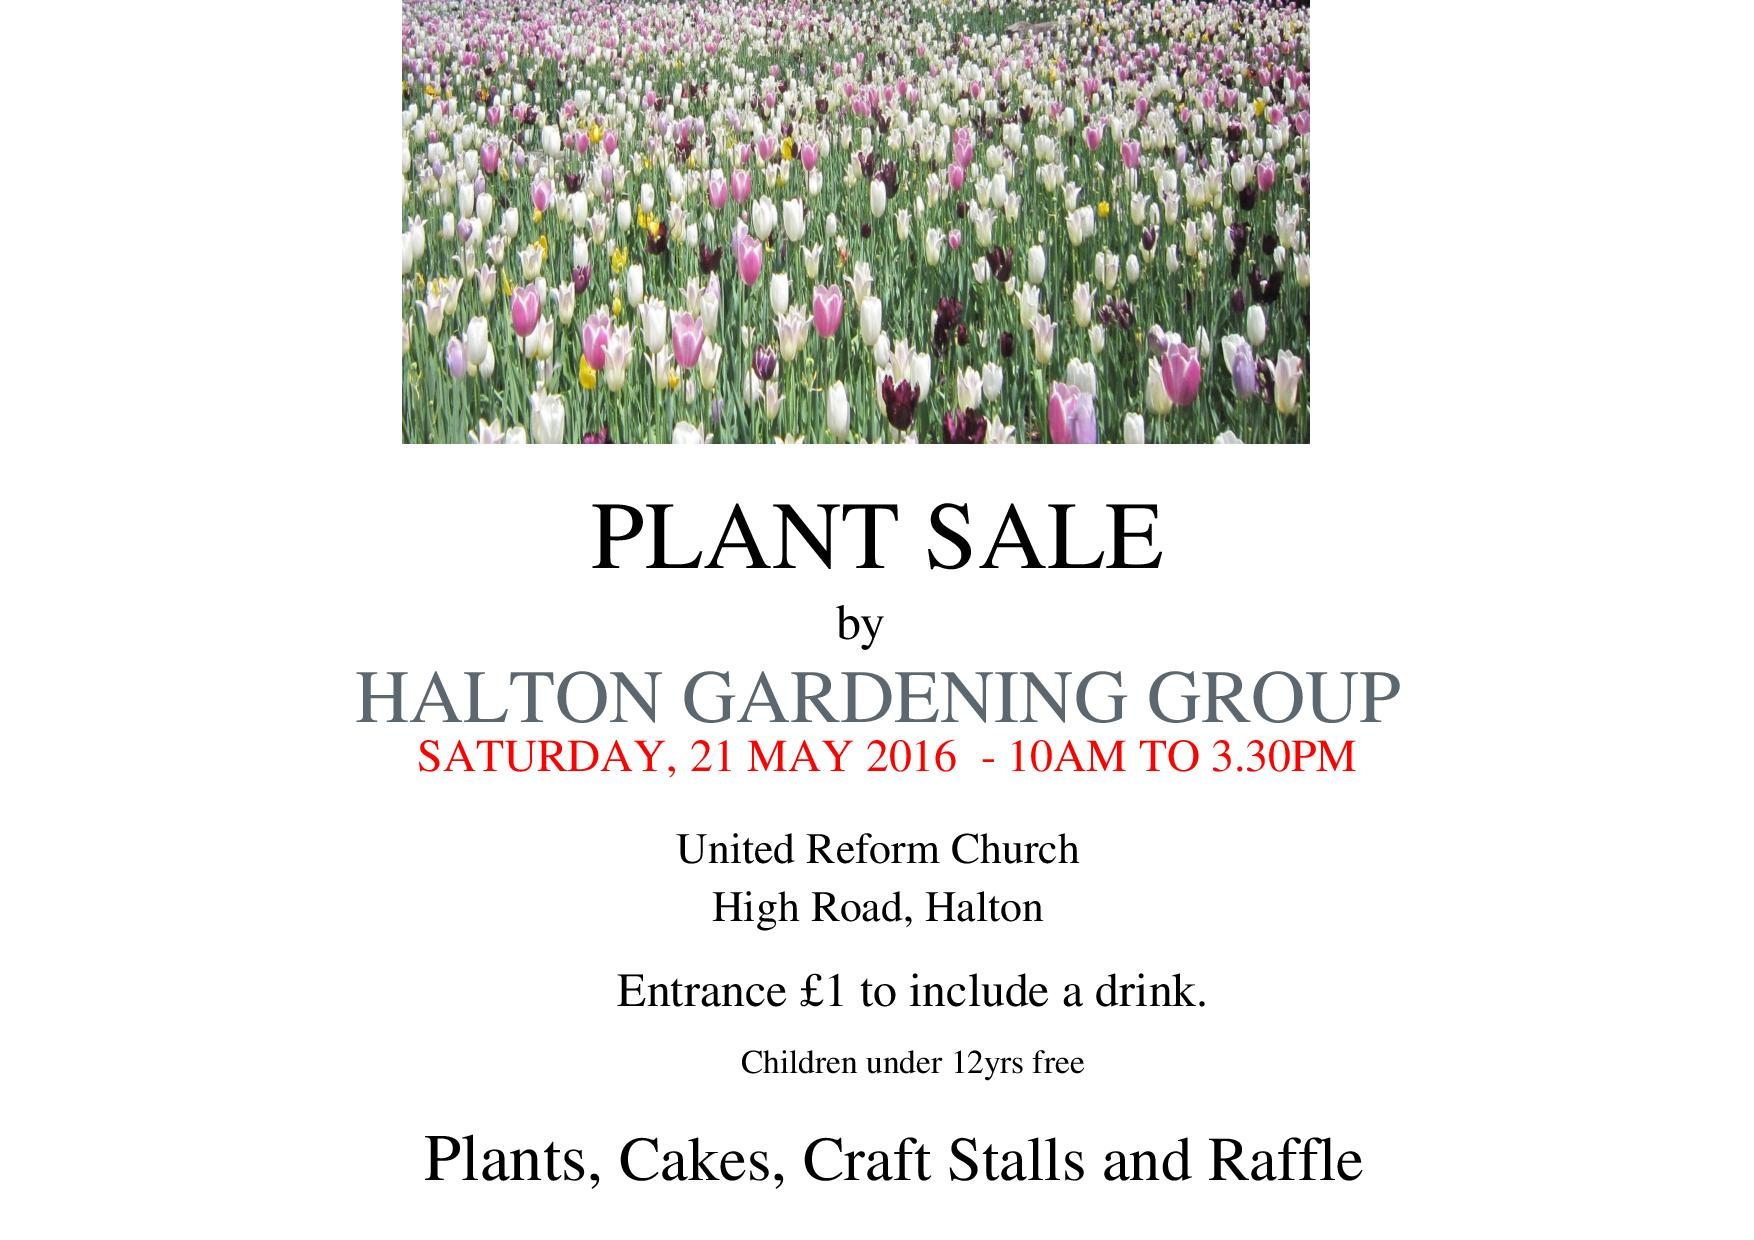 HGG Plant Sale 12.05.16 poster-page-001 (2)